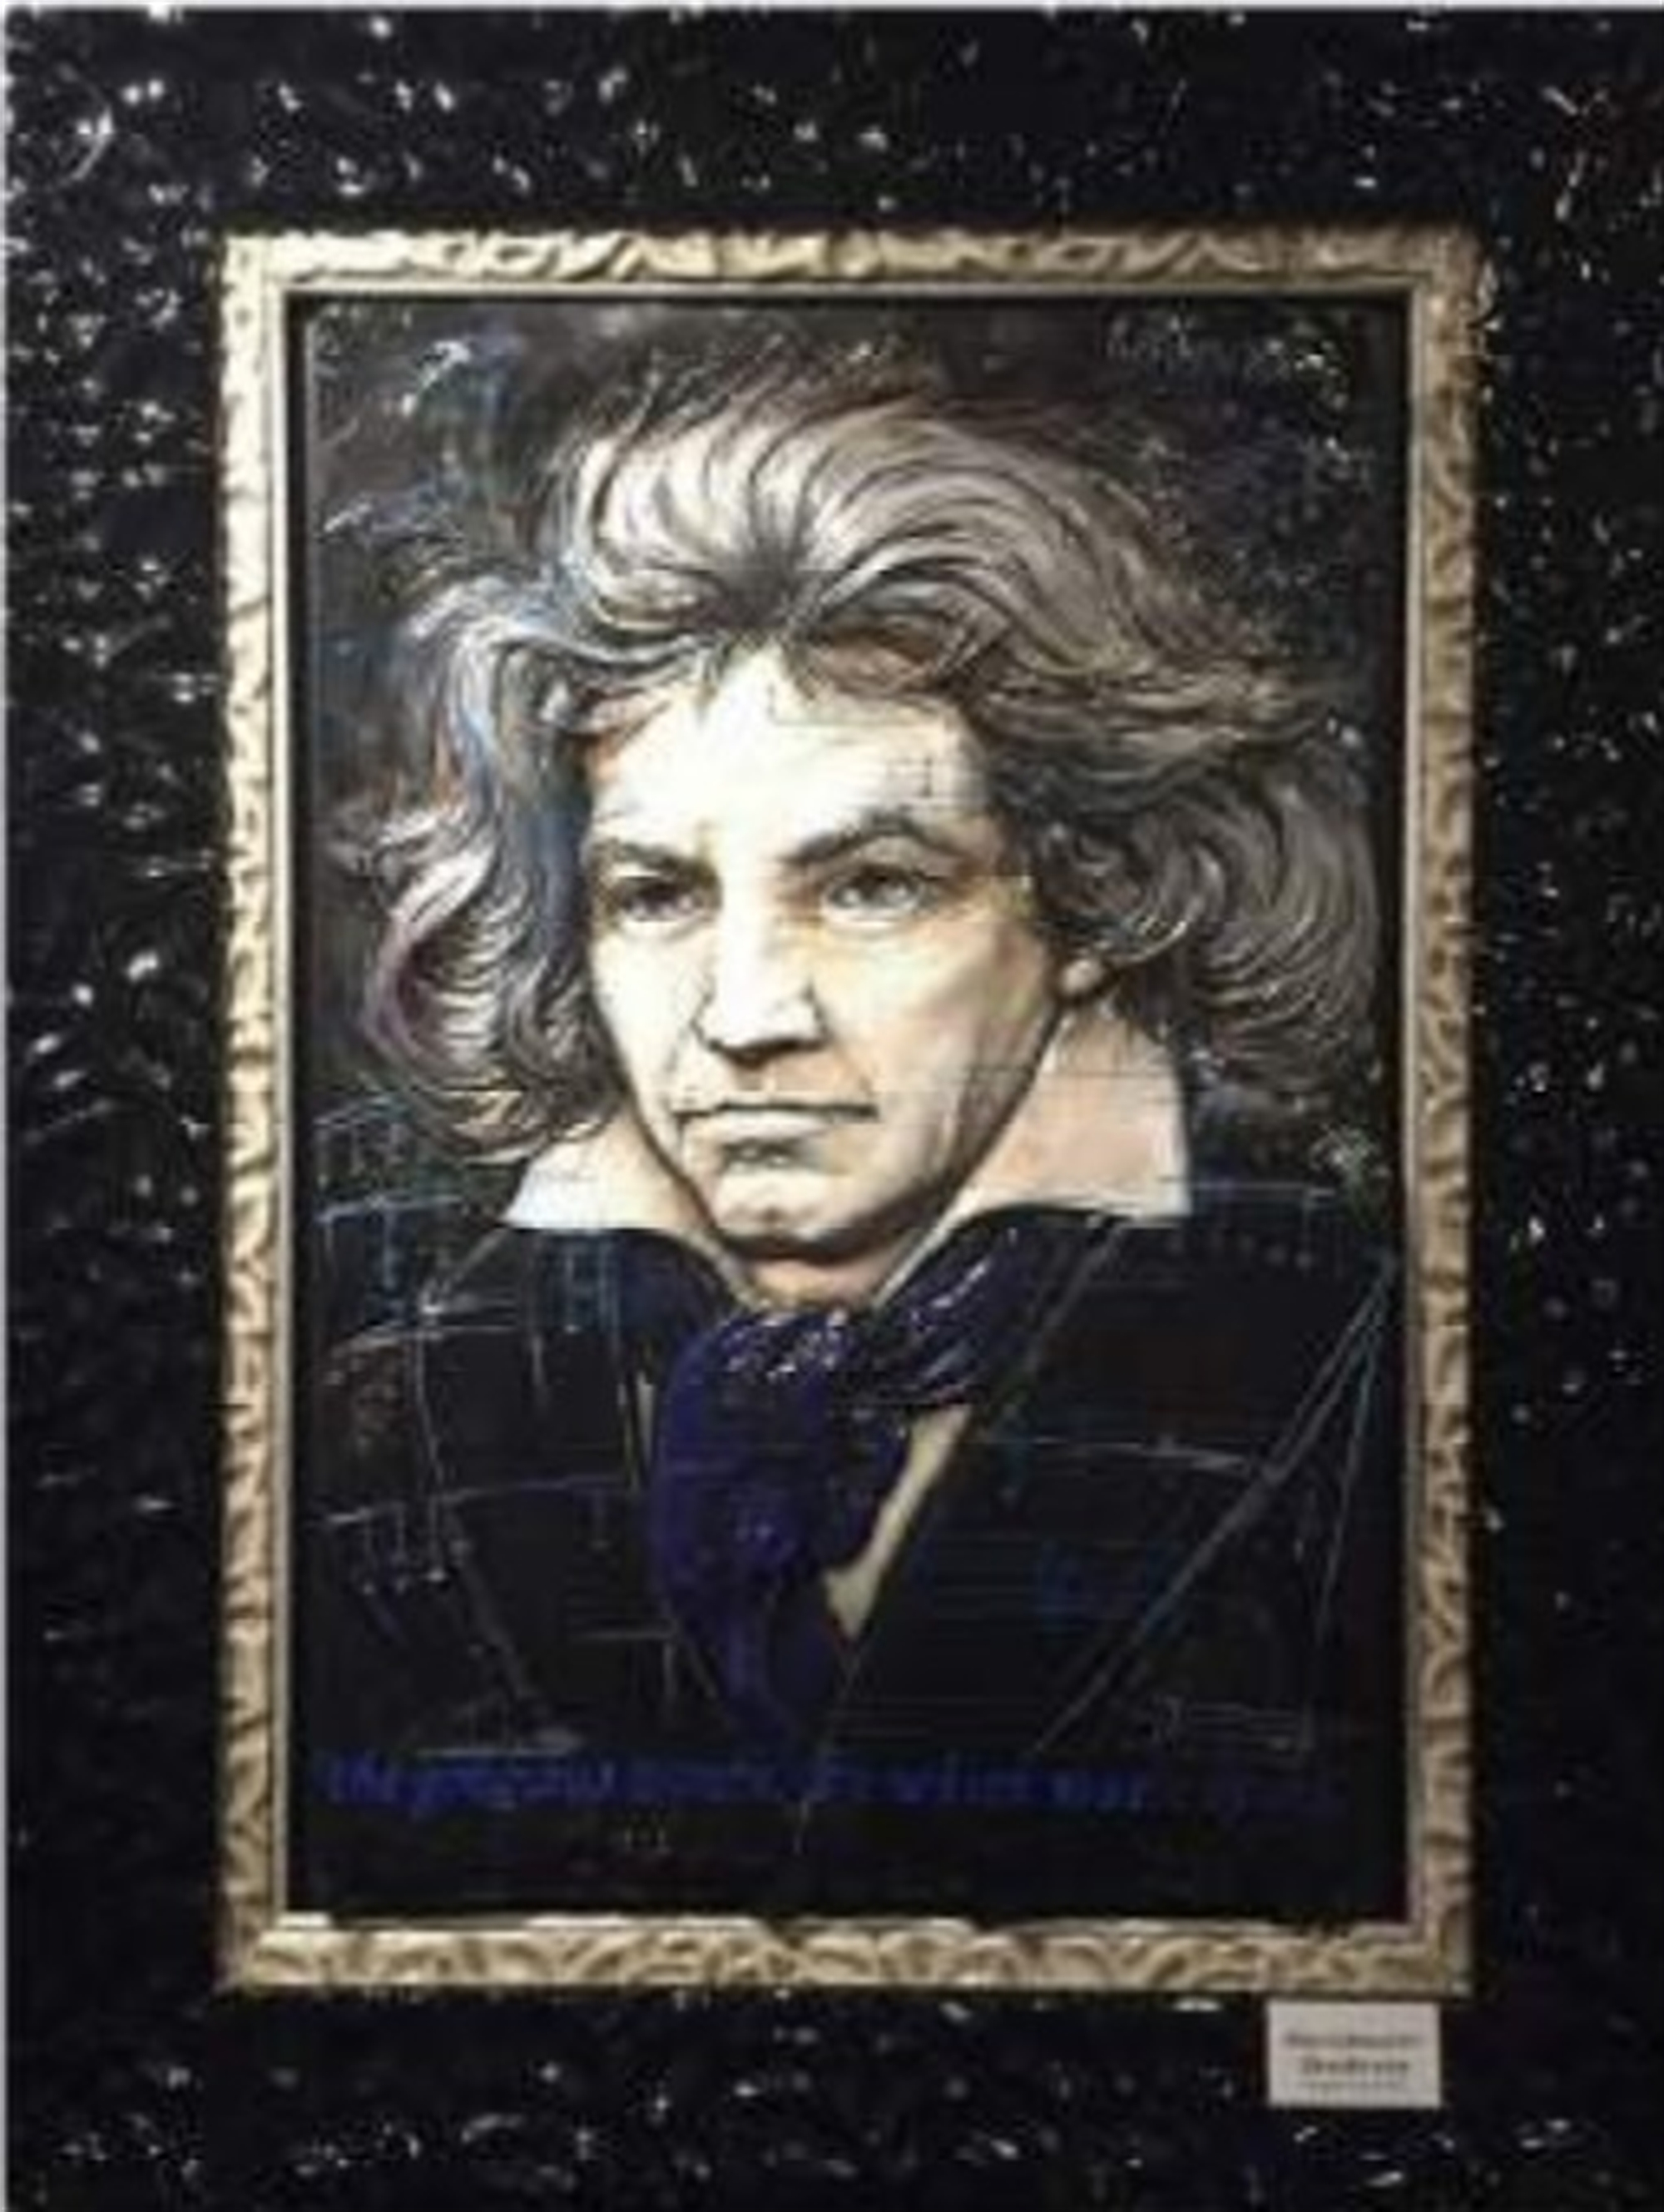 Musicmaster Beethoven White and Blue by Bill Mack